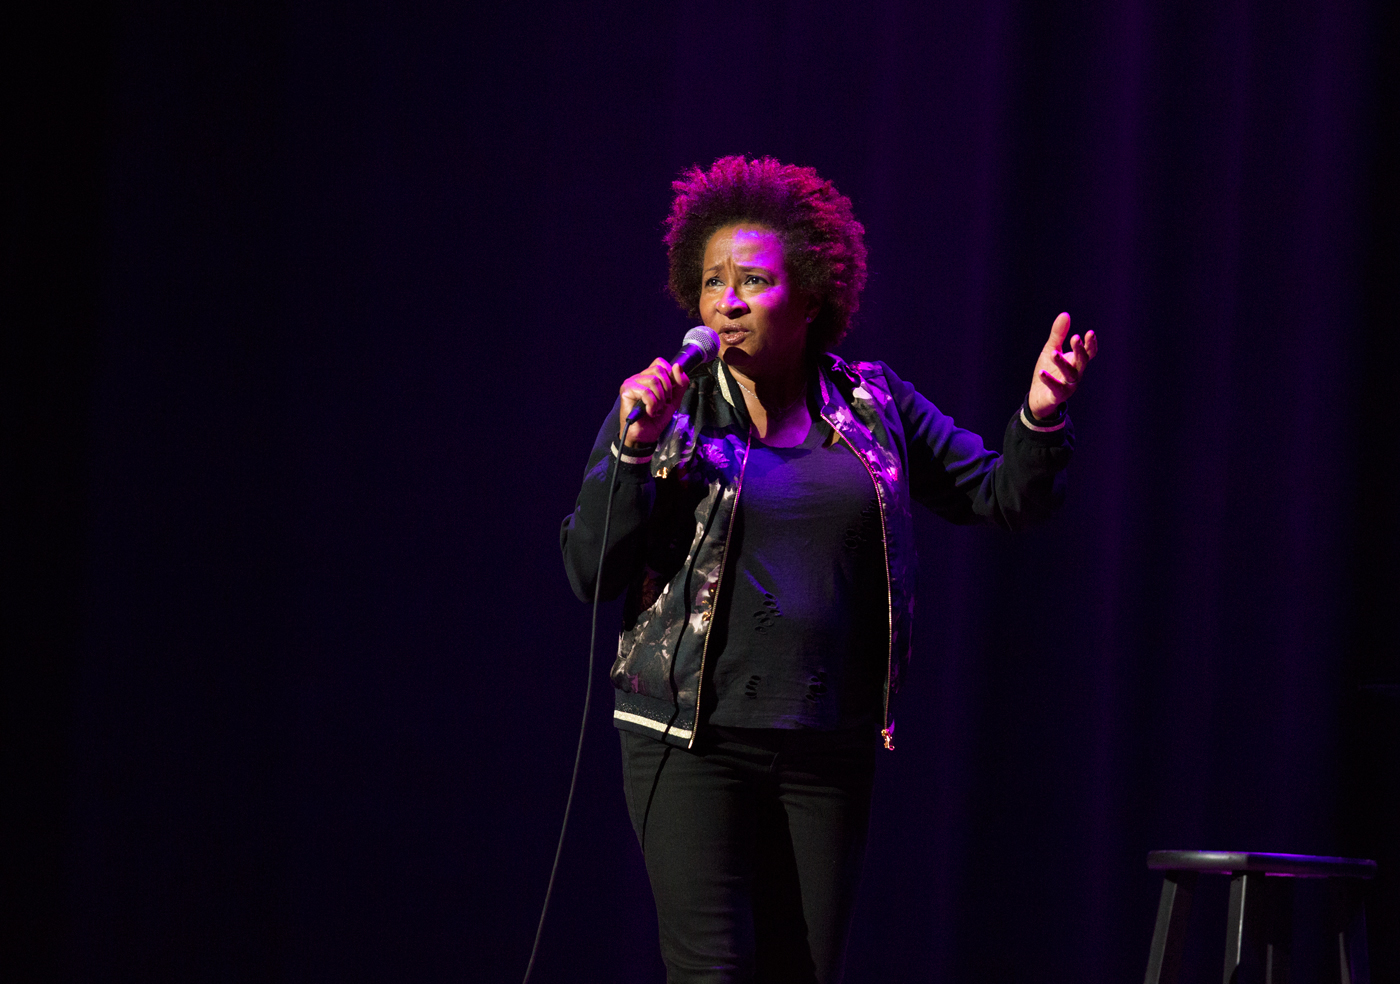 Wanda Sykes at the Sony Centre.